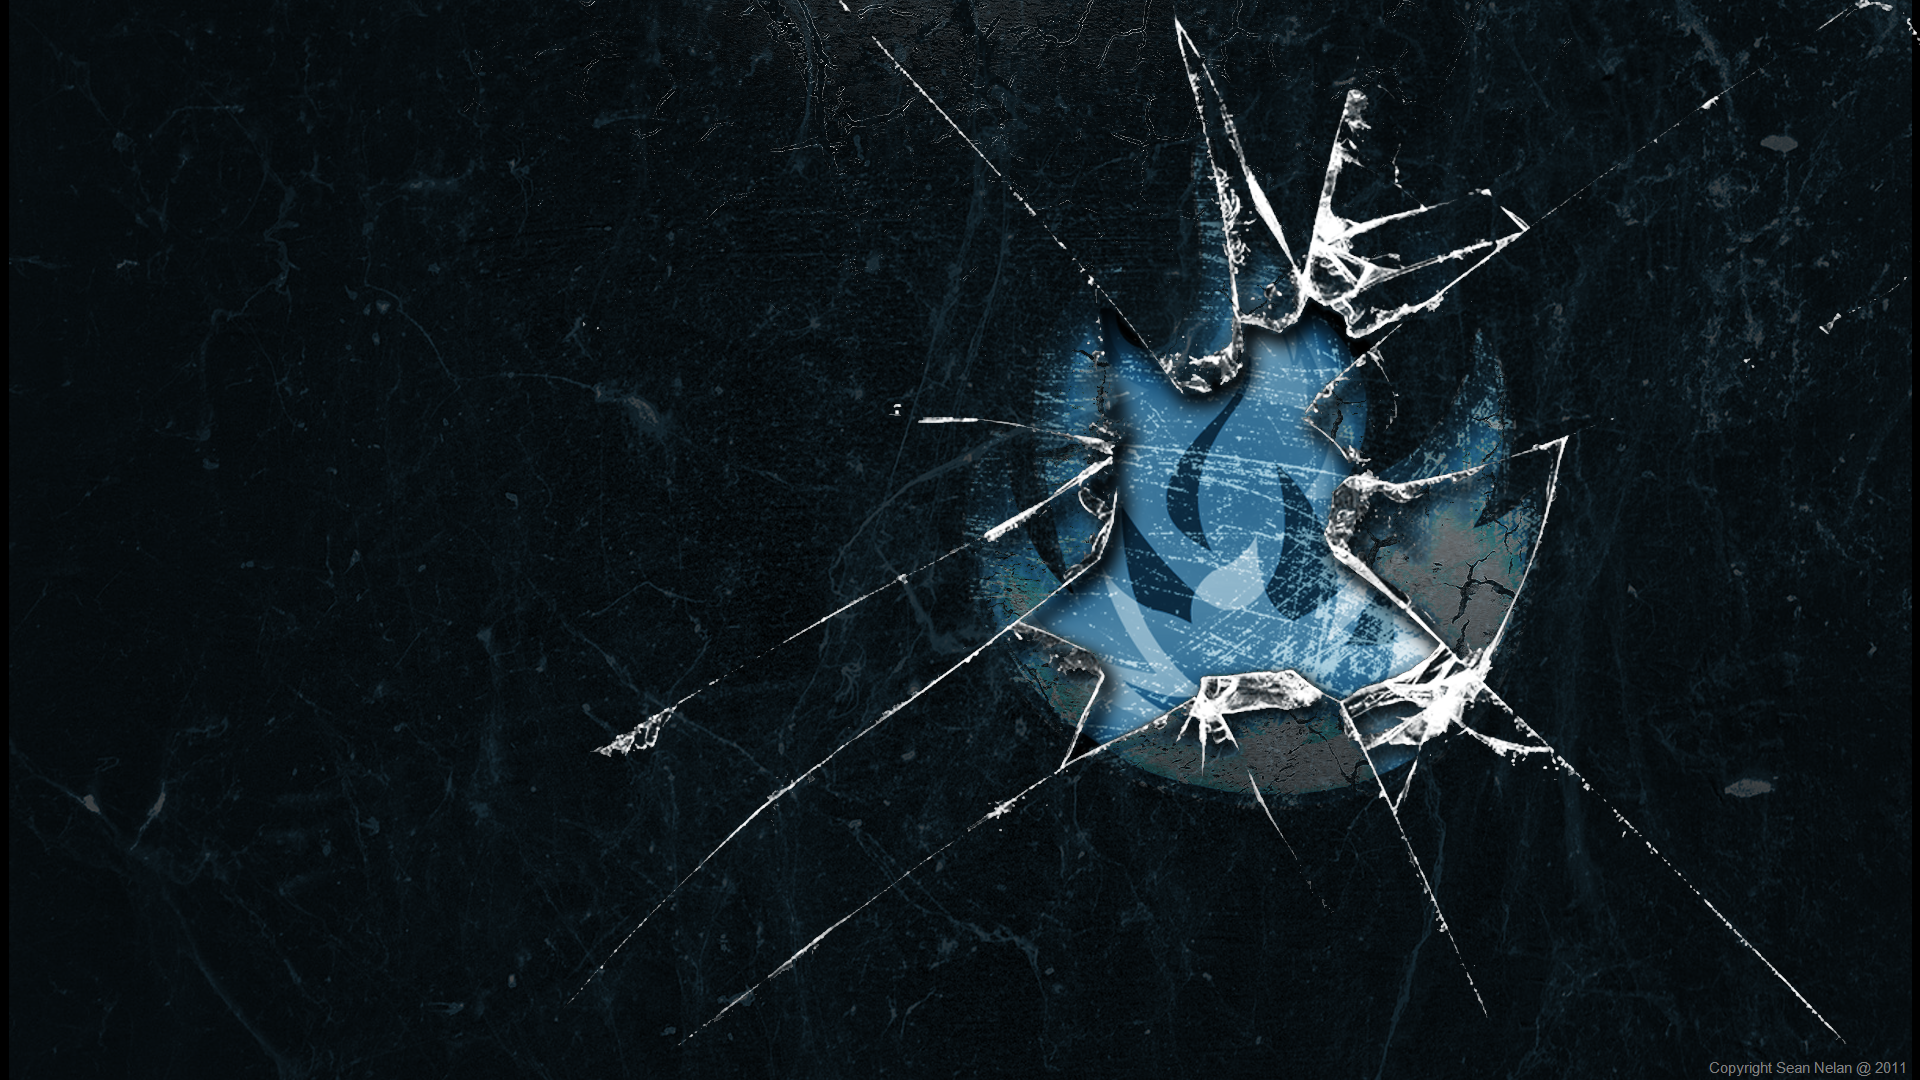 1920x1080px cracked glass wallpaper wallpapersafari download broken glass wallpaper widescreen pictures in high definition 1920x1080 voltagebd Gallery